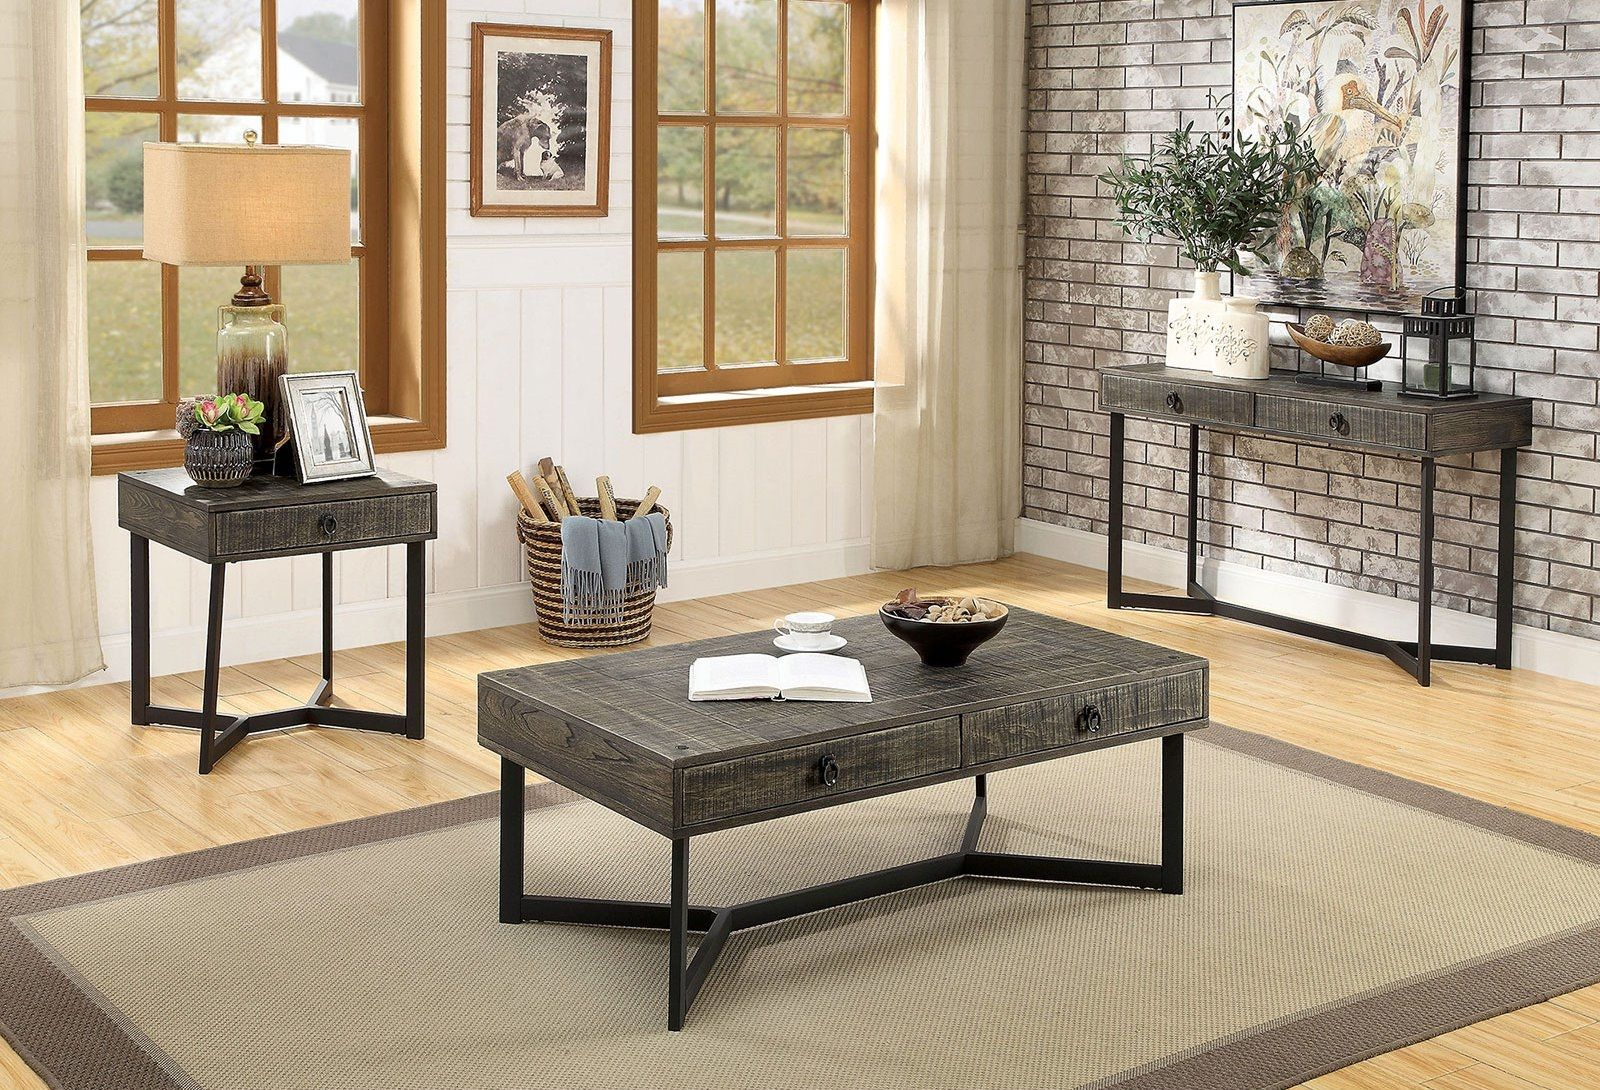 Veblen Coffee Table Cm4498c Furniture Of America Coffee Tables In 2021 Coffee Table 3 Piece Coffee Table Set Accent Table Sets [ 1090 x 1600 Pixel ]